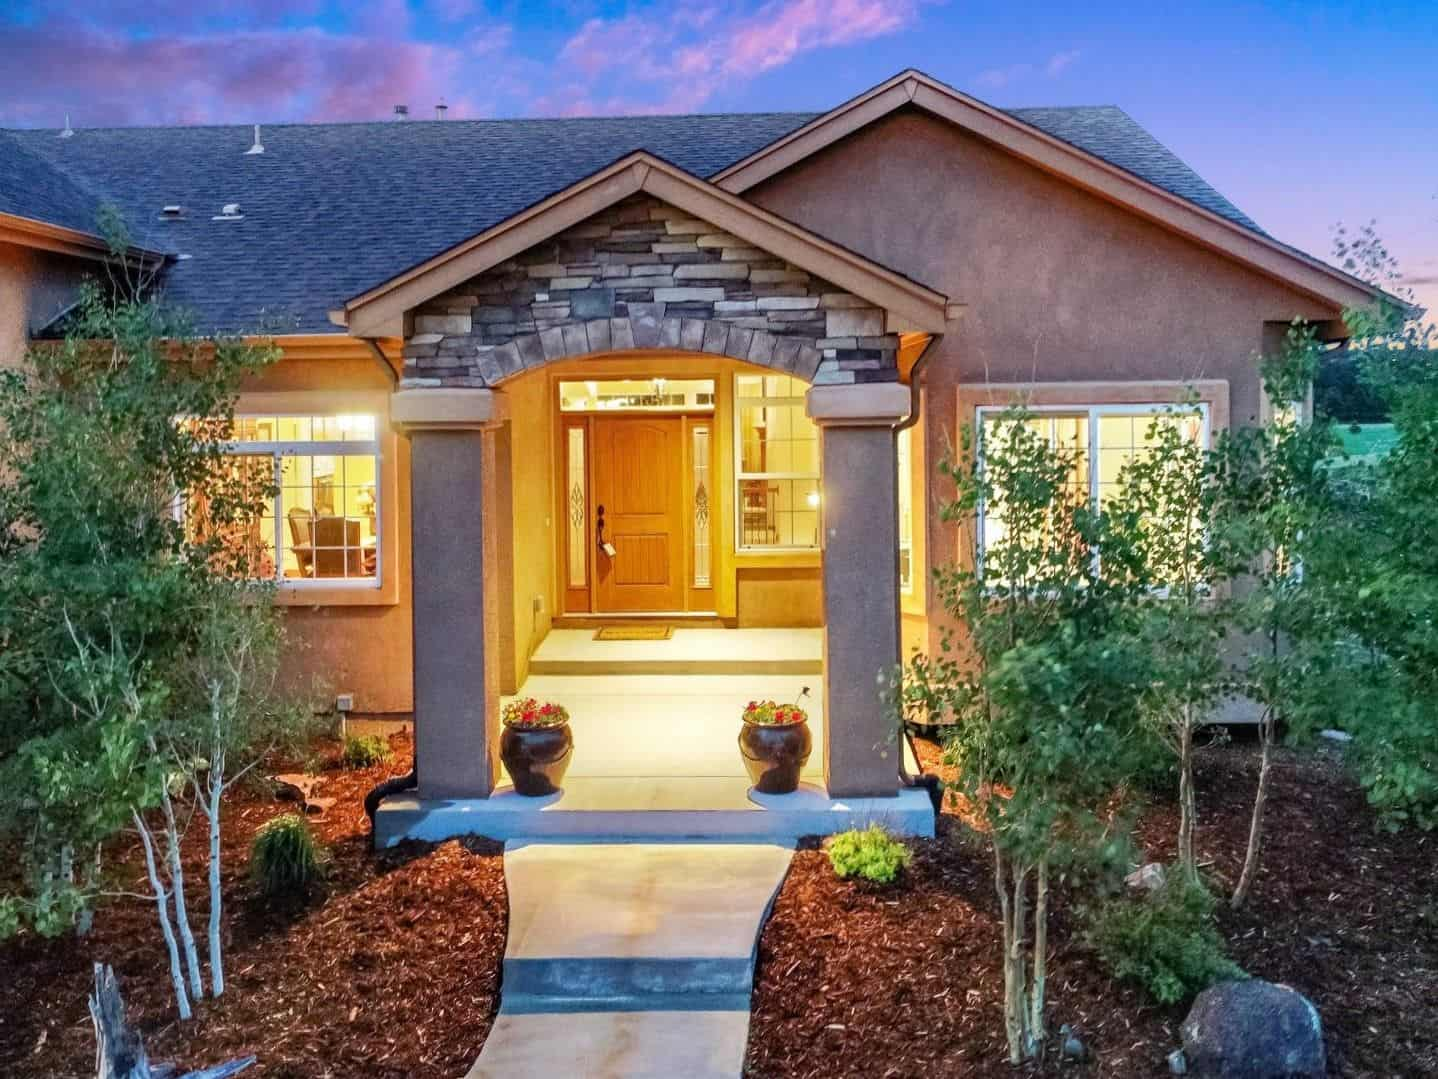 Twilight Views of Covered Front Entry